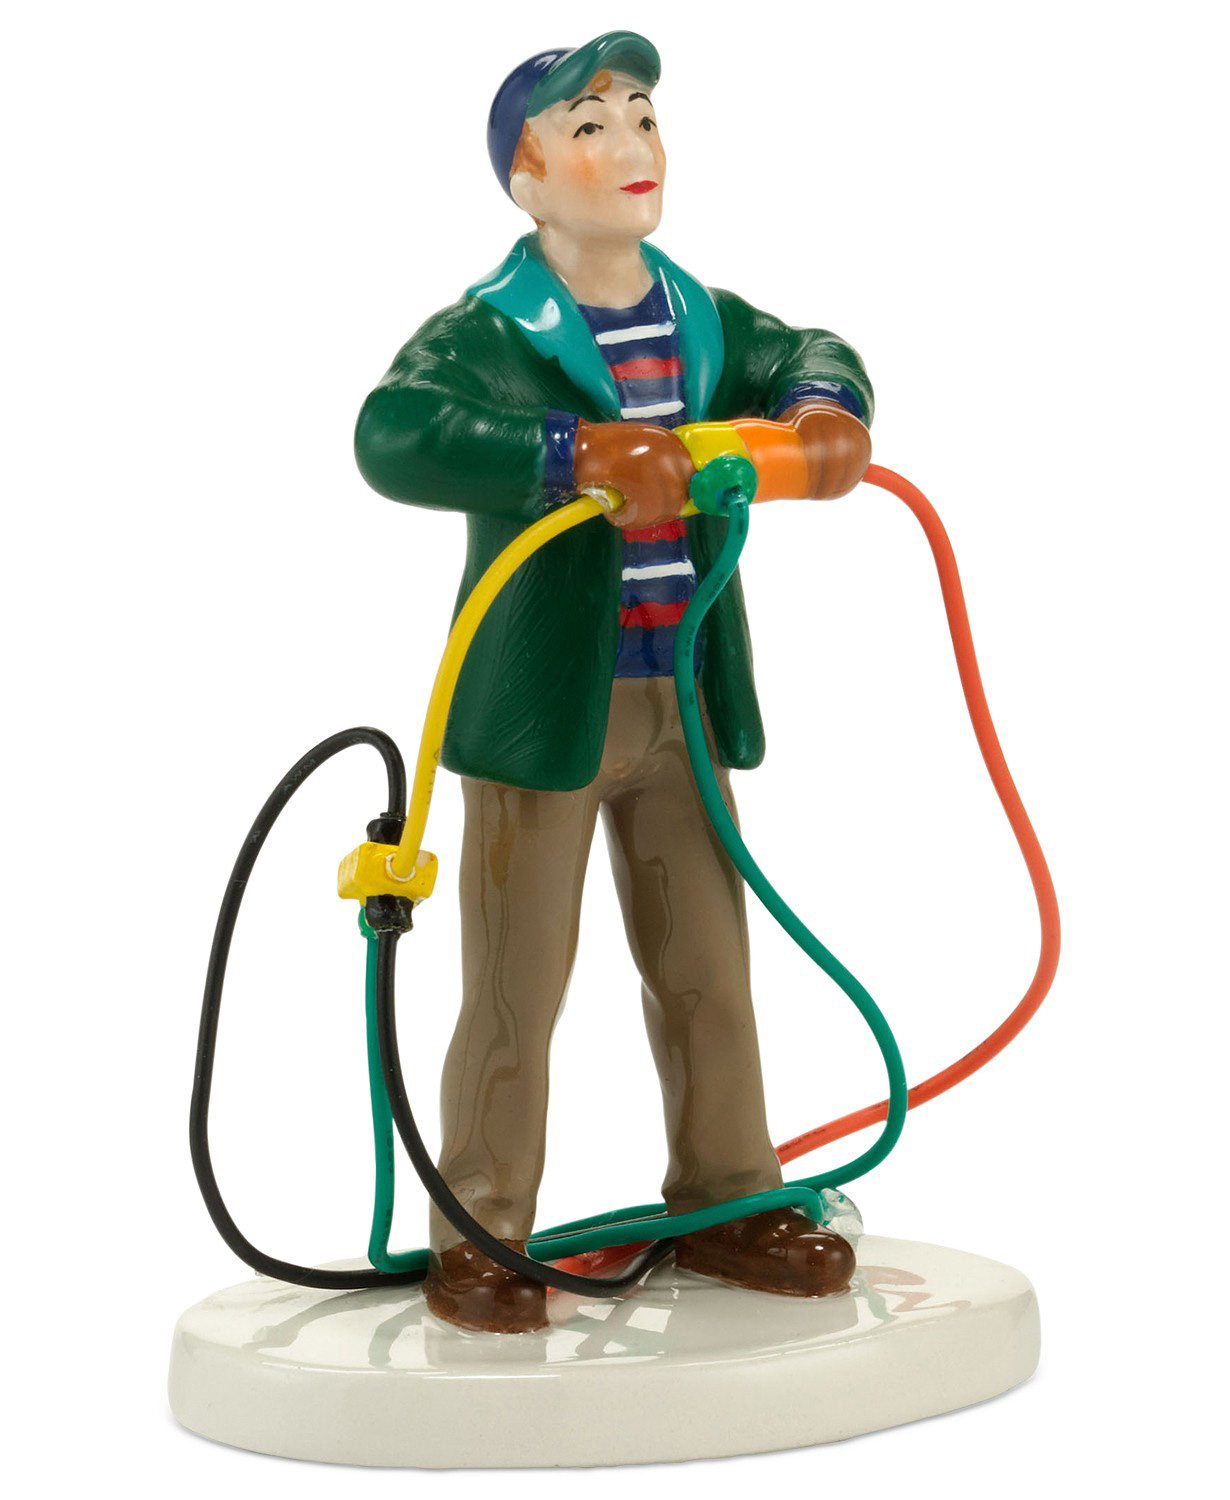 Snow Village National Lampoon's Christmas Vacation Fire It Up Dad Collectible Figurine